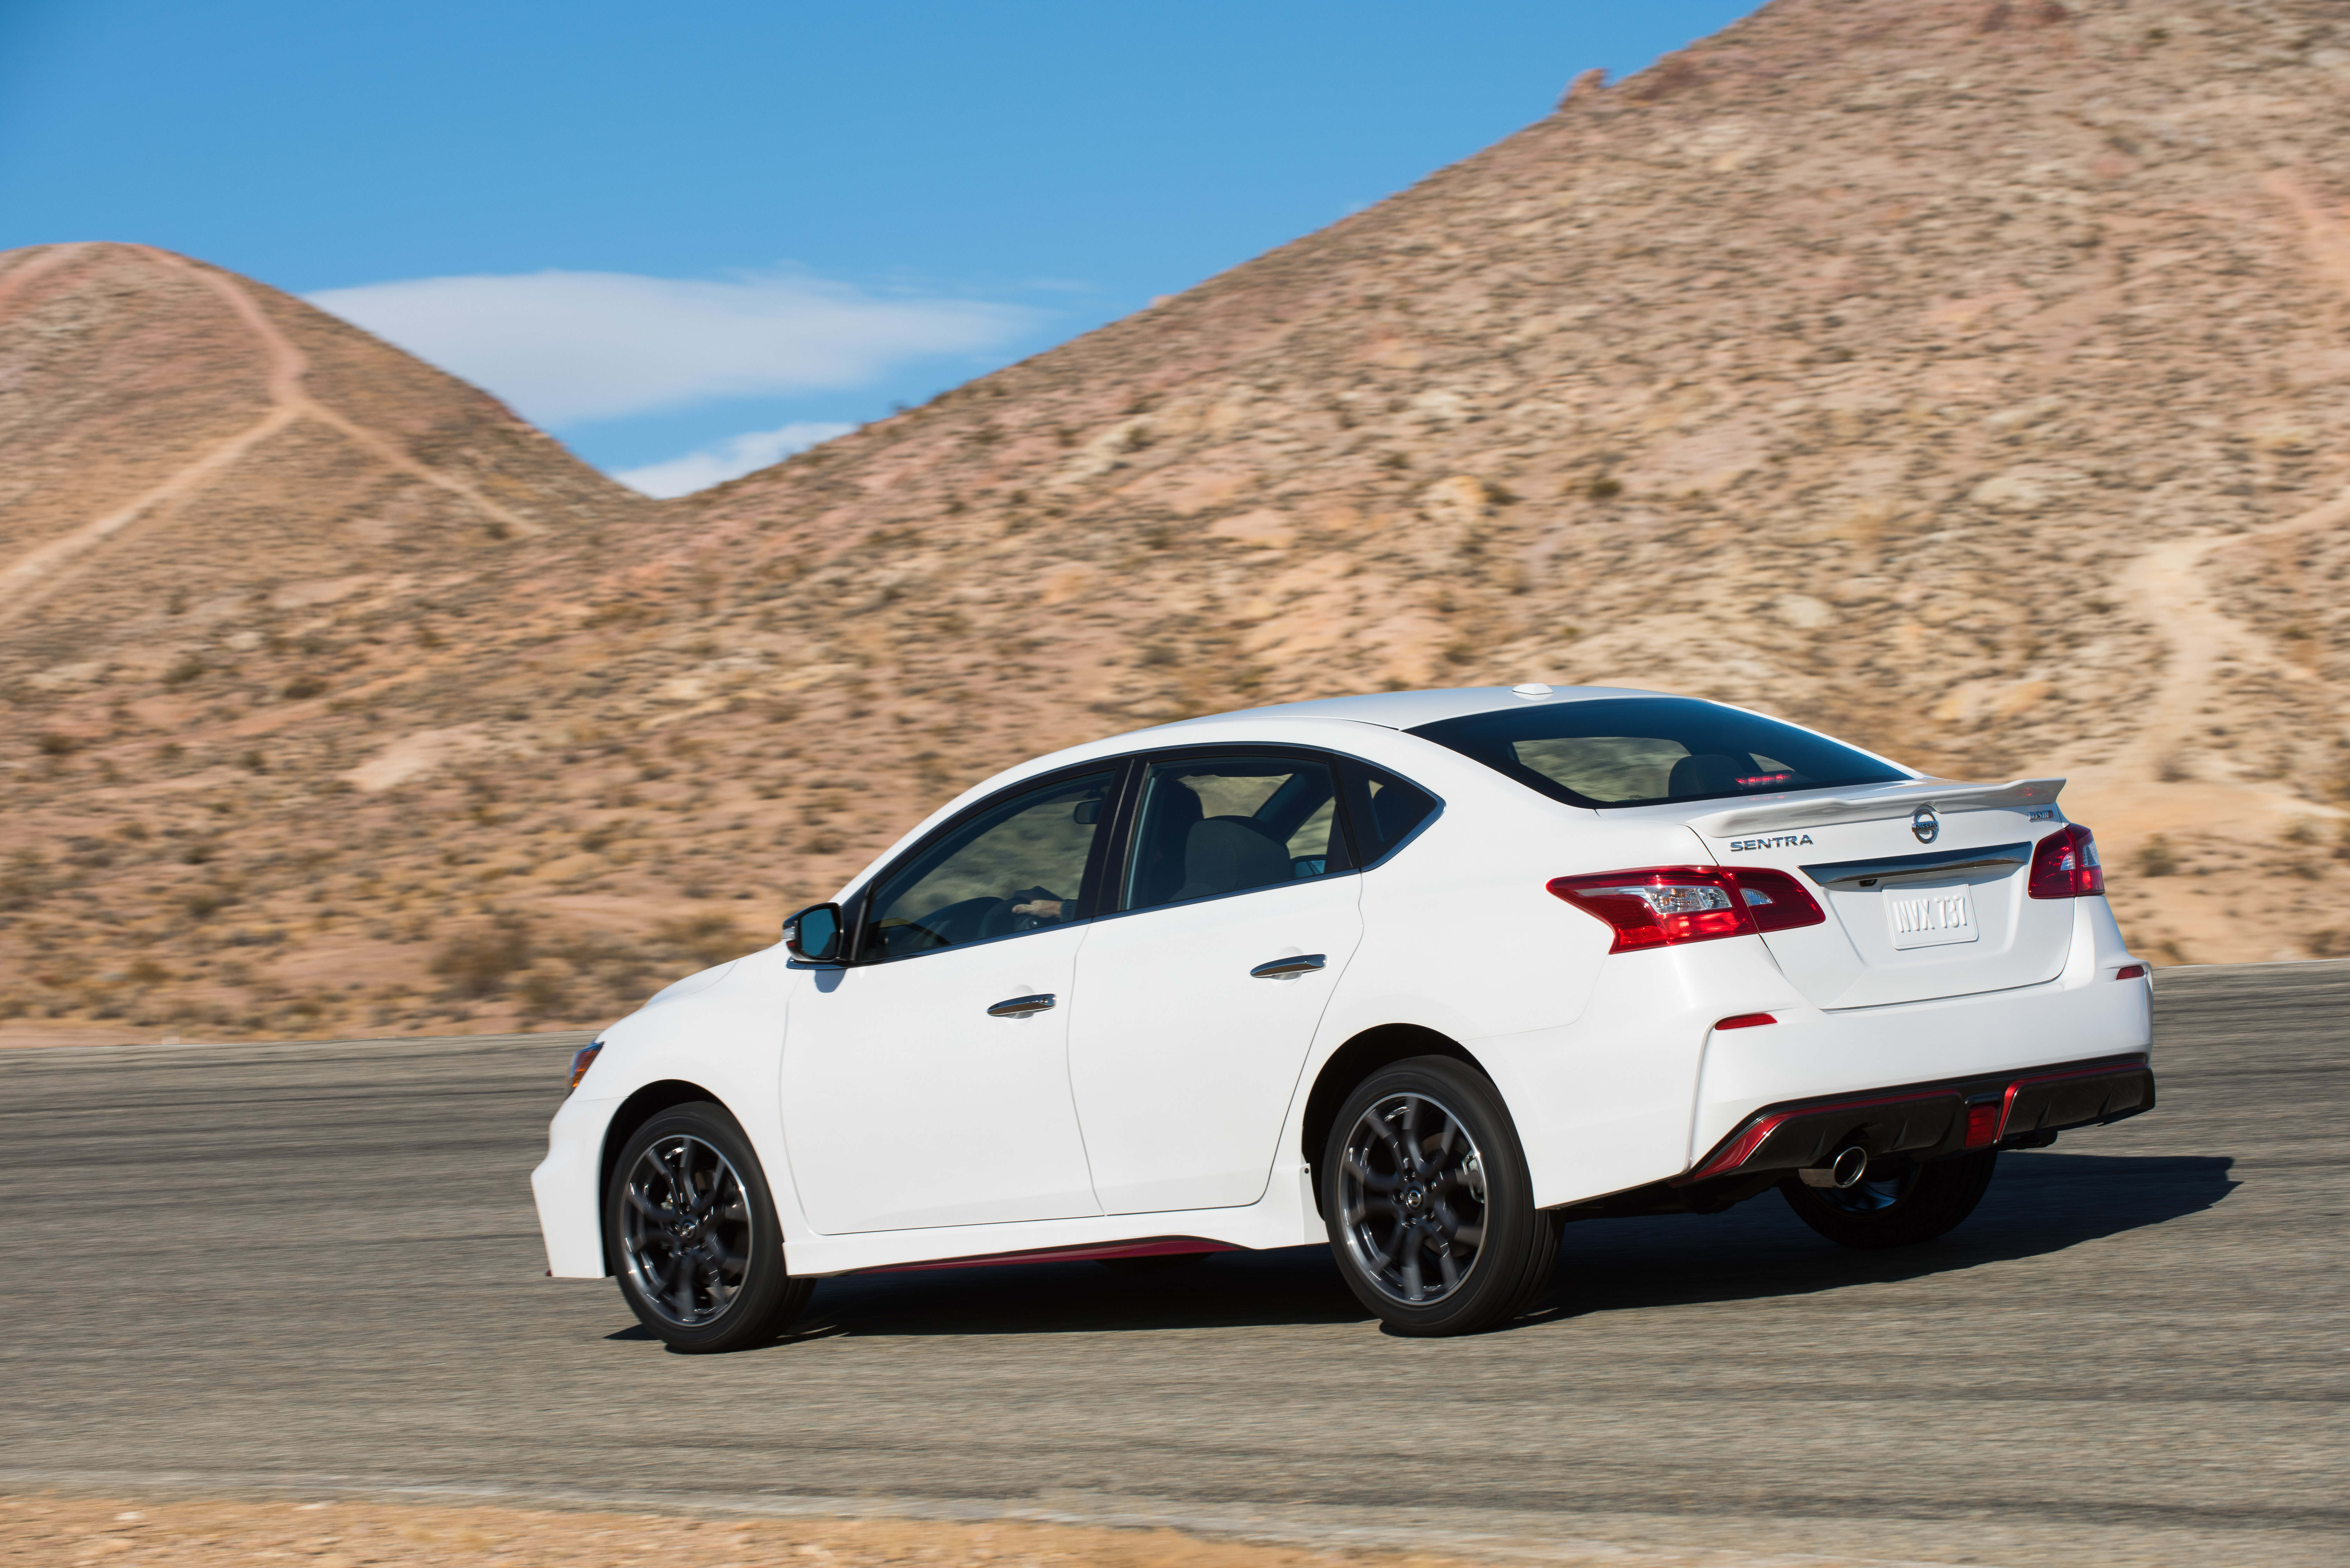 2017 nissan sentra nismo debuts a sportier sylphy image 580022. Black Bedroom Furniture Sets. Home Design Ideas